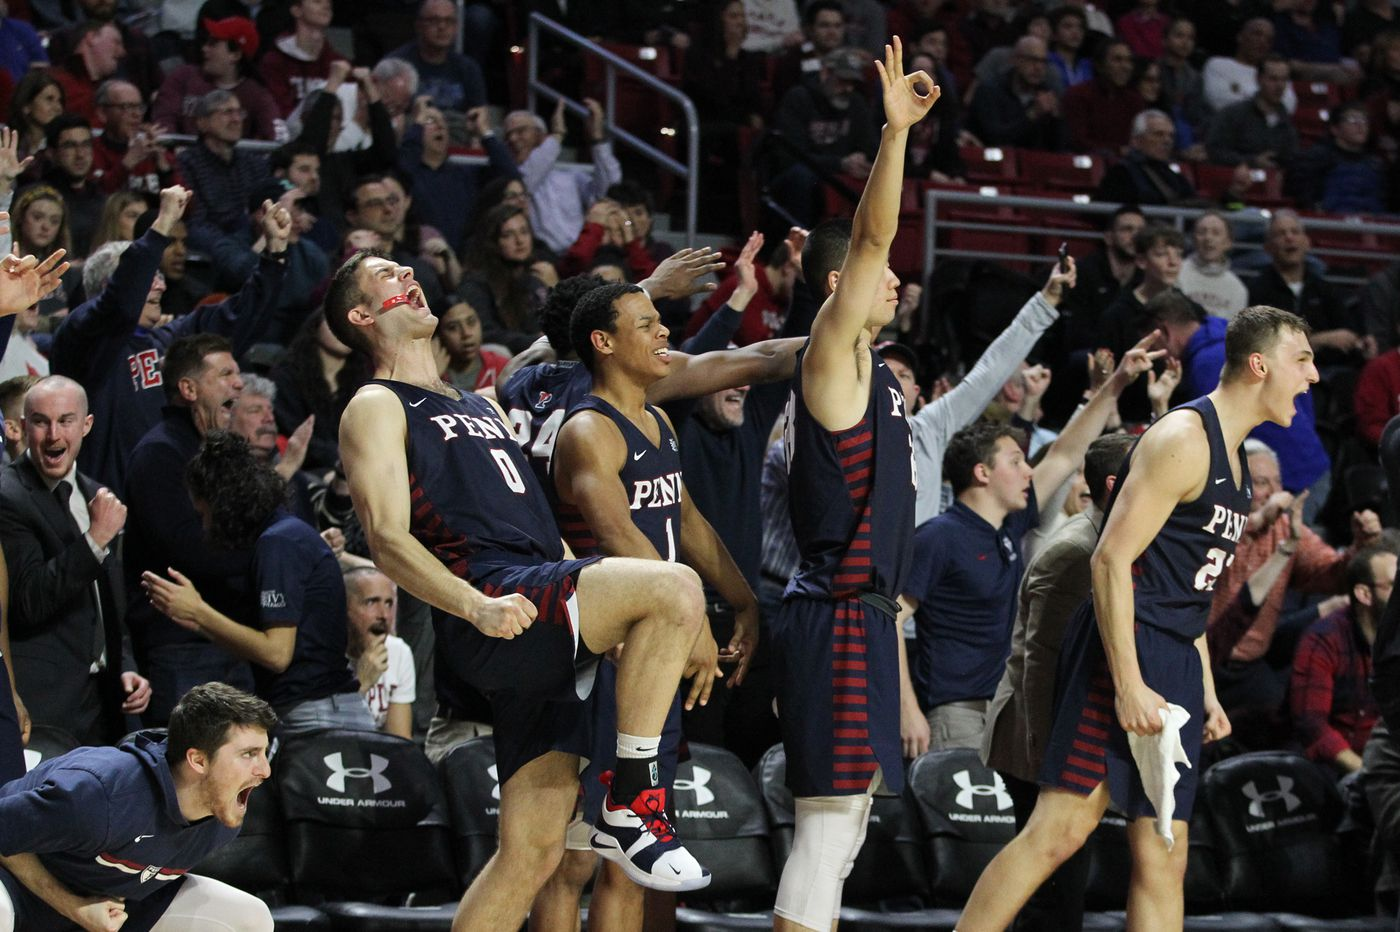 Penn beats Temple to win at least a share of the Big 5 title